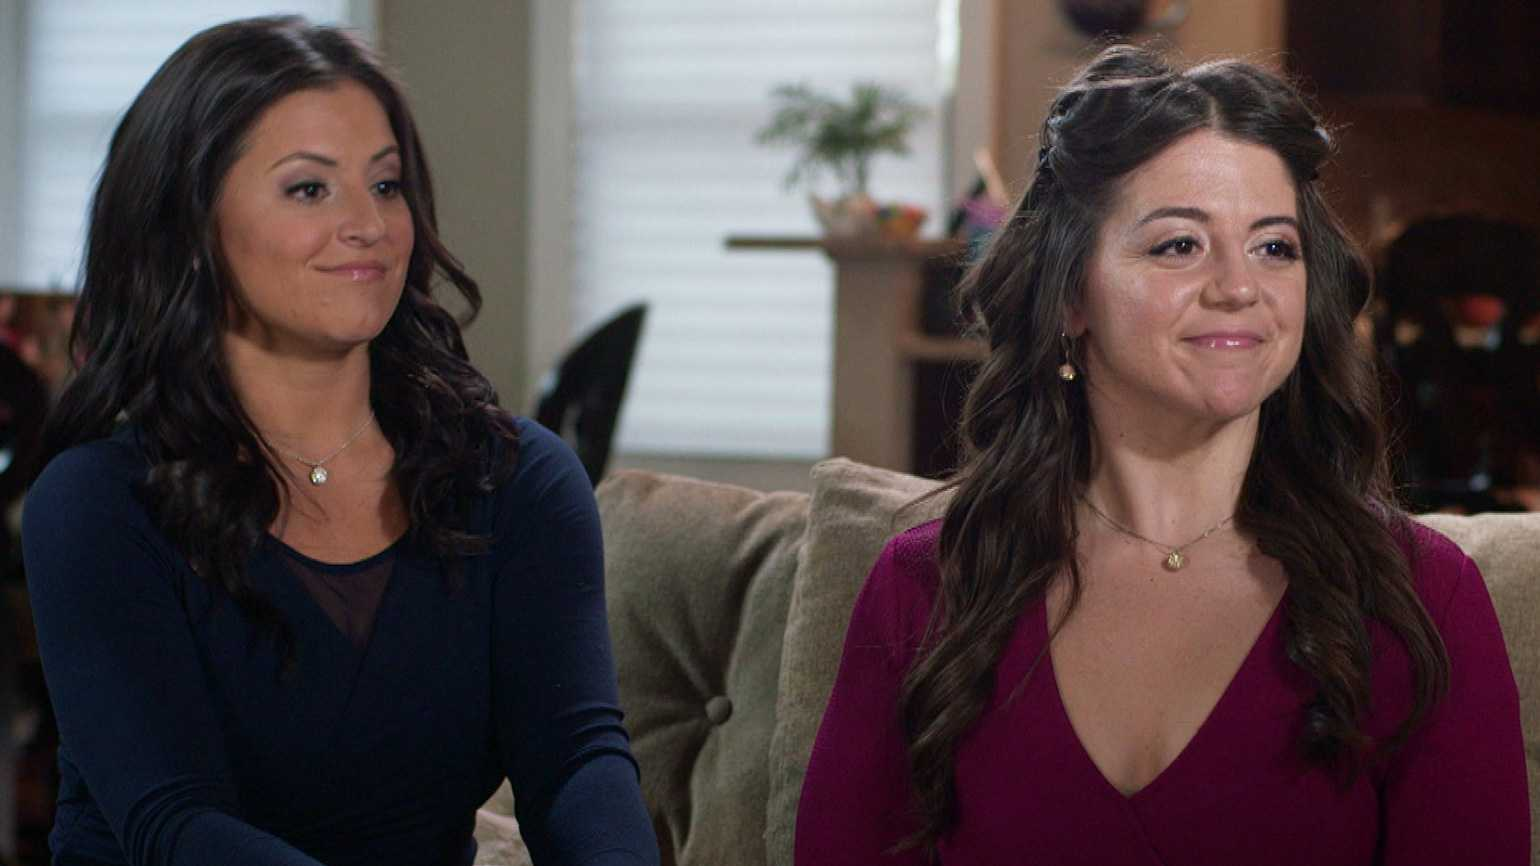 Jen Bricker (right) with her sister, former Olympic gymnast Dominique Moceanu